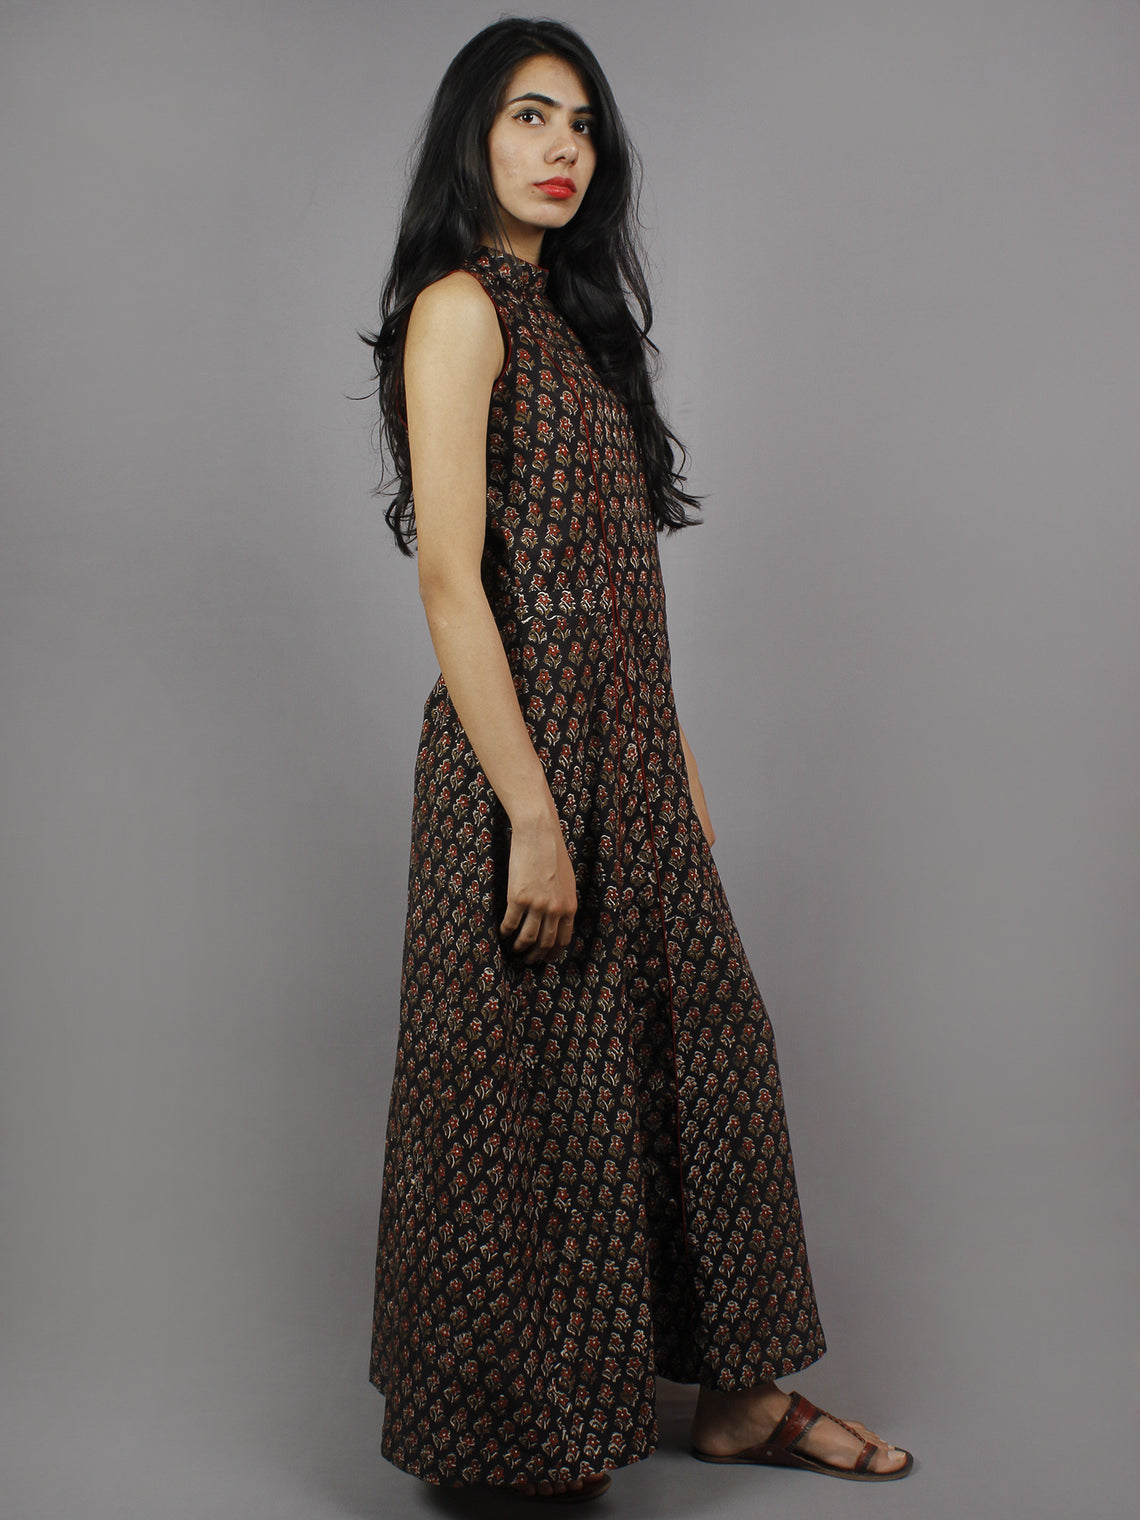 Black Maroon Ivory Hand Block Printed Princess Line Stand Collar Dress - D40F893